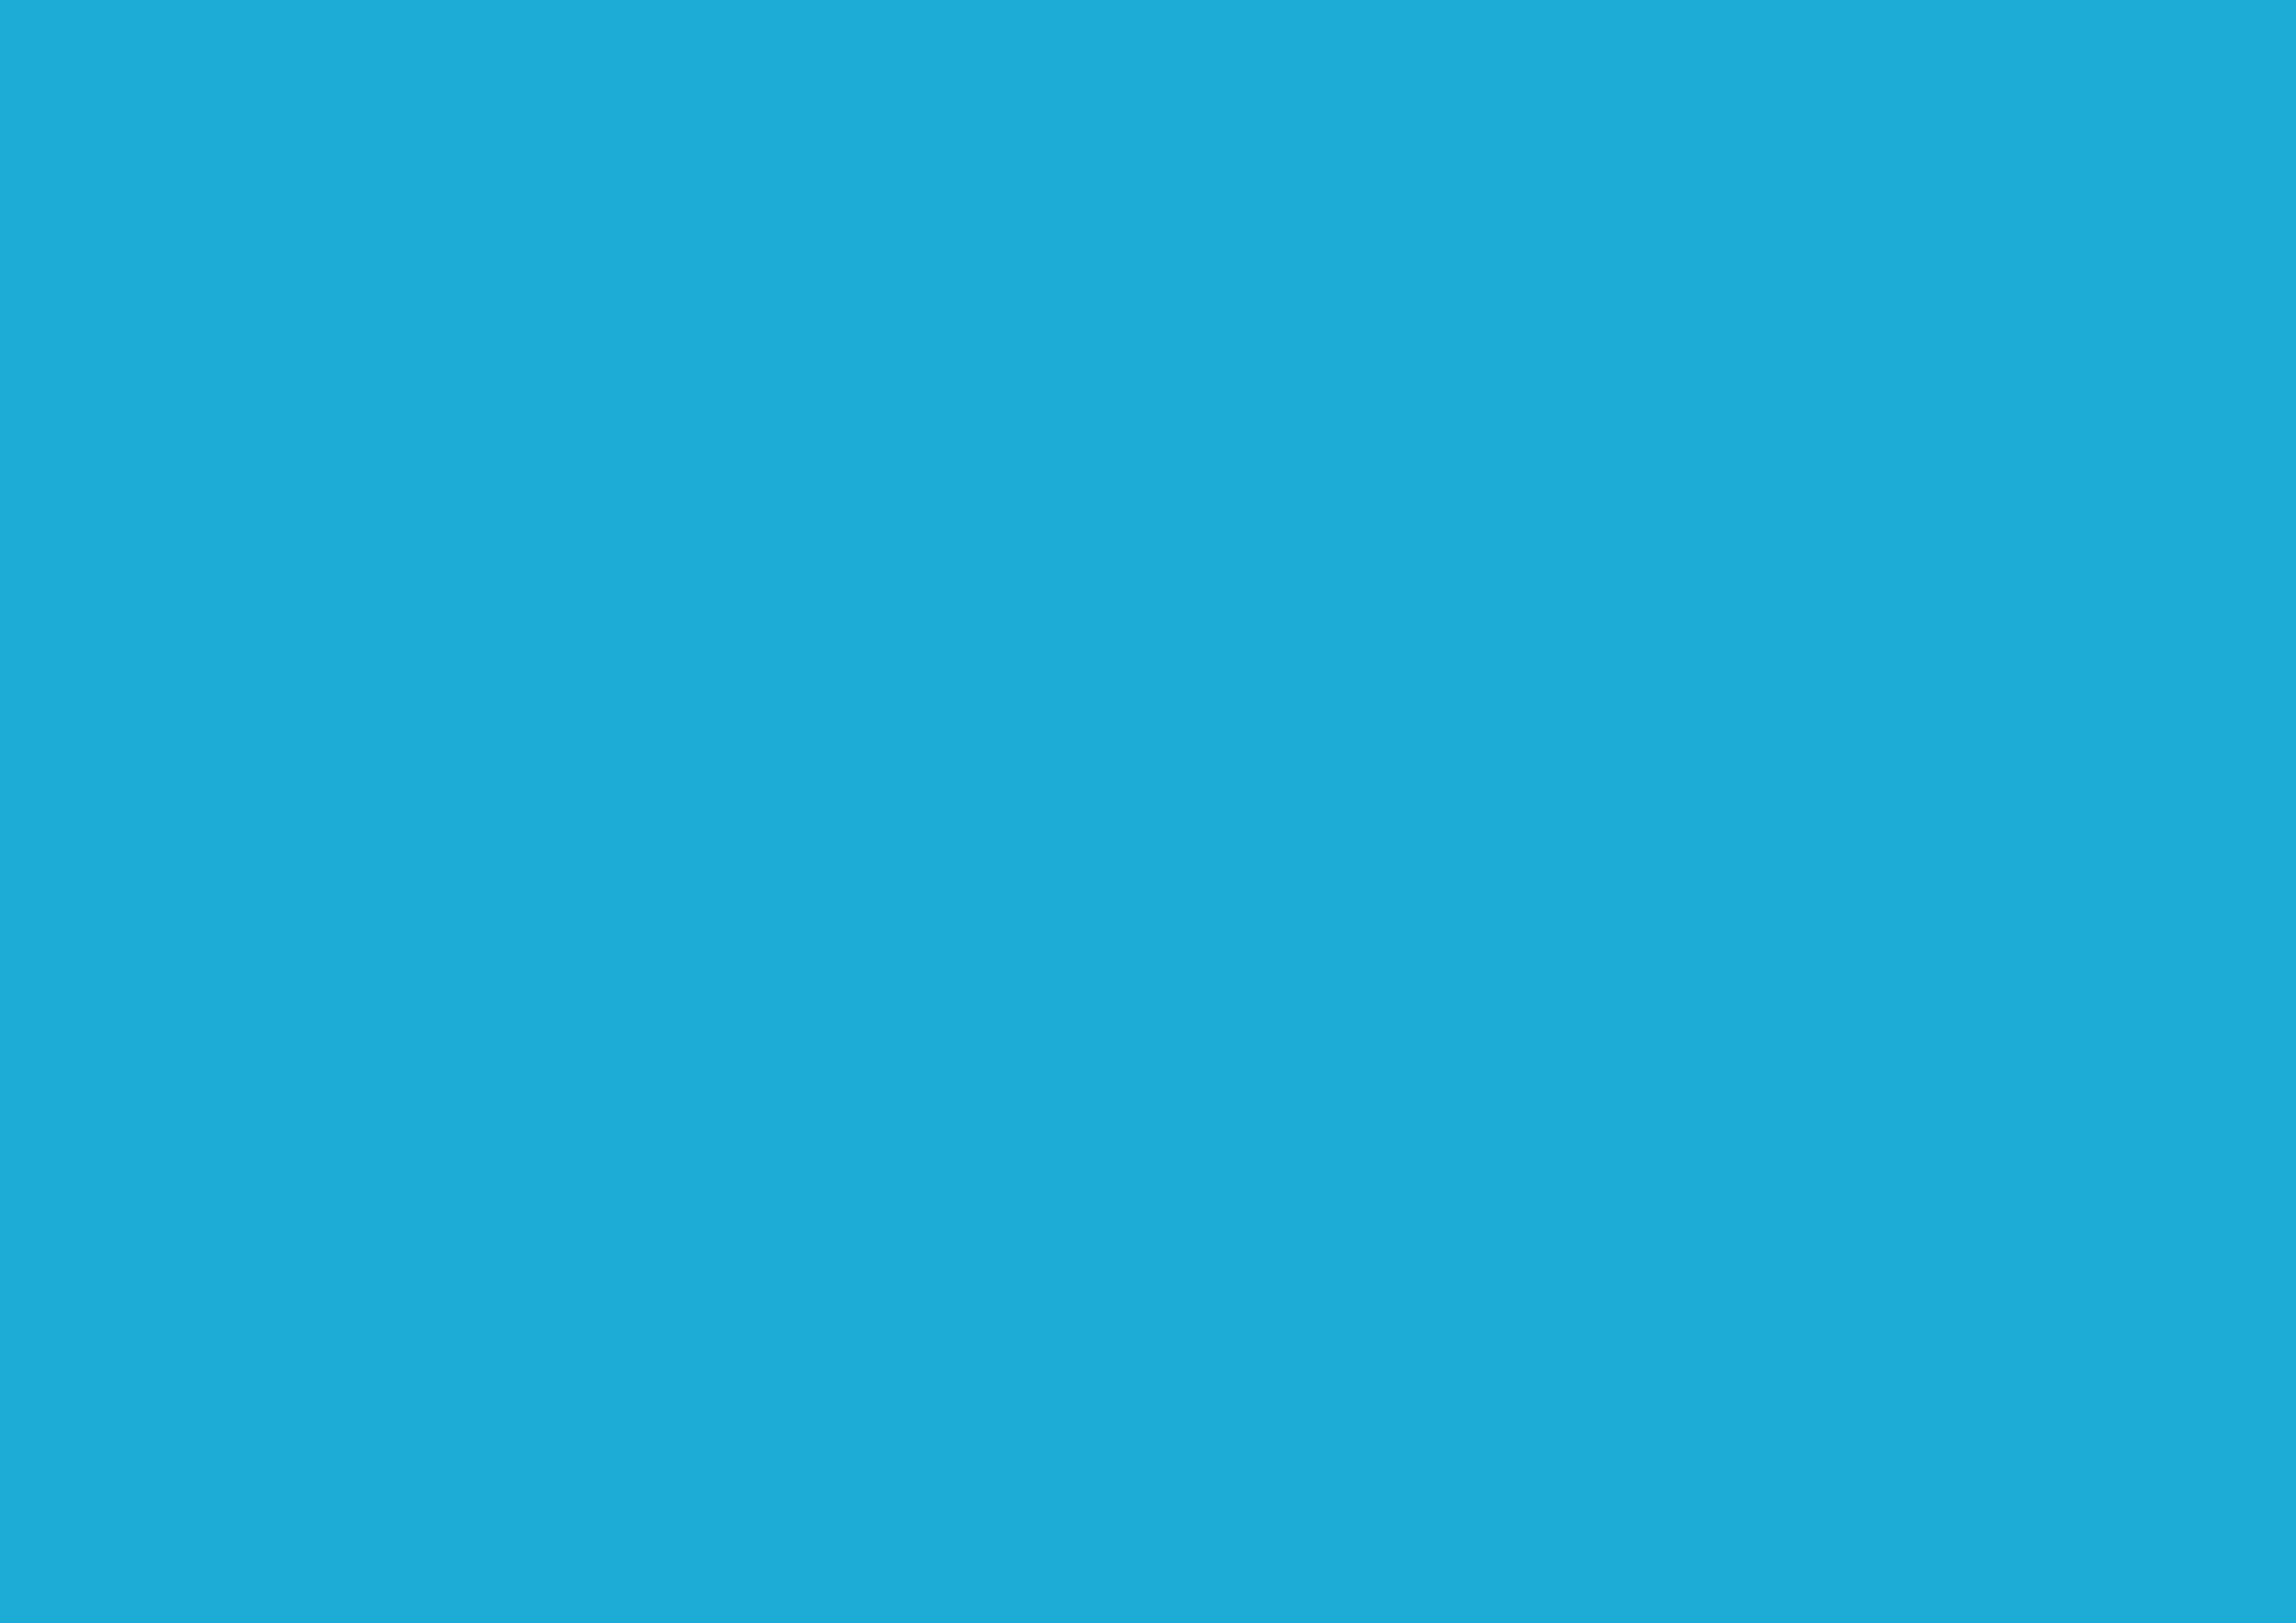 3508x2480 Bright Cerulean Solid Color Background